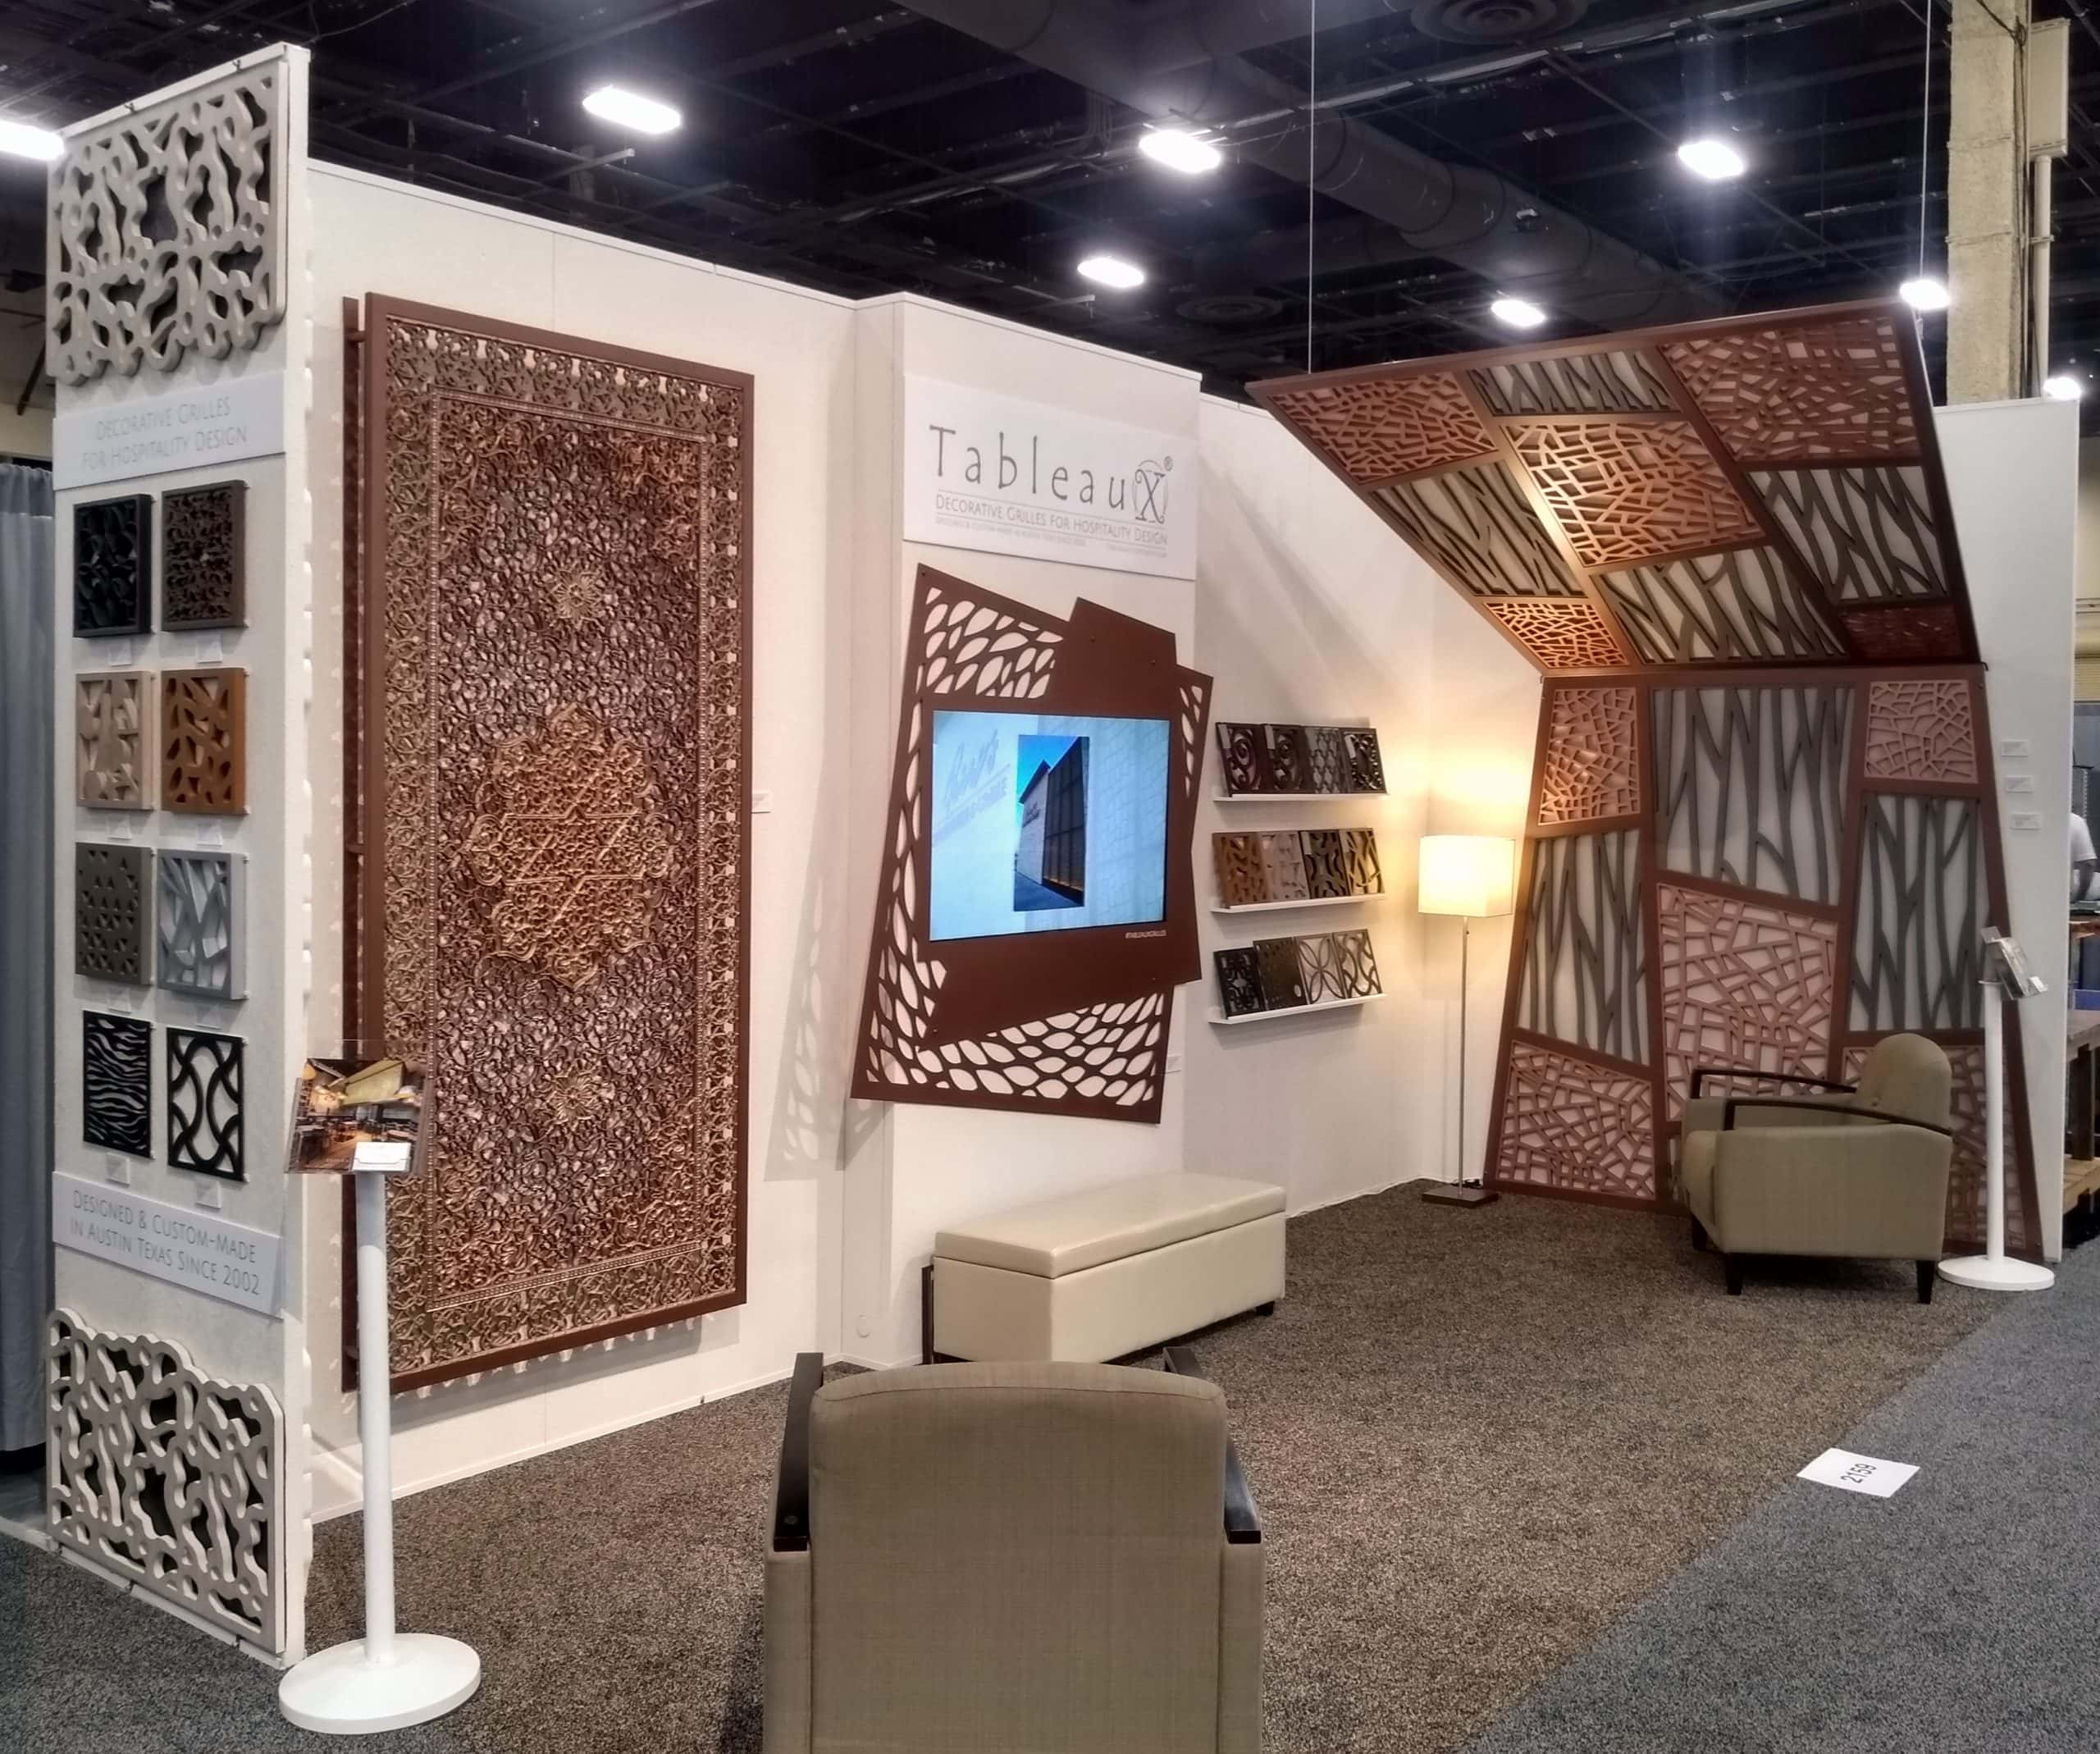 Tableaux Booth at HD Expo